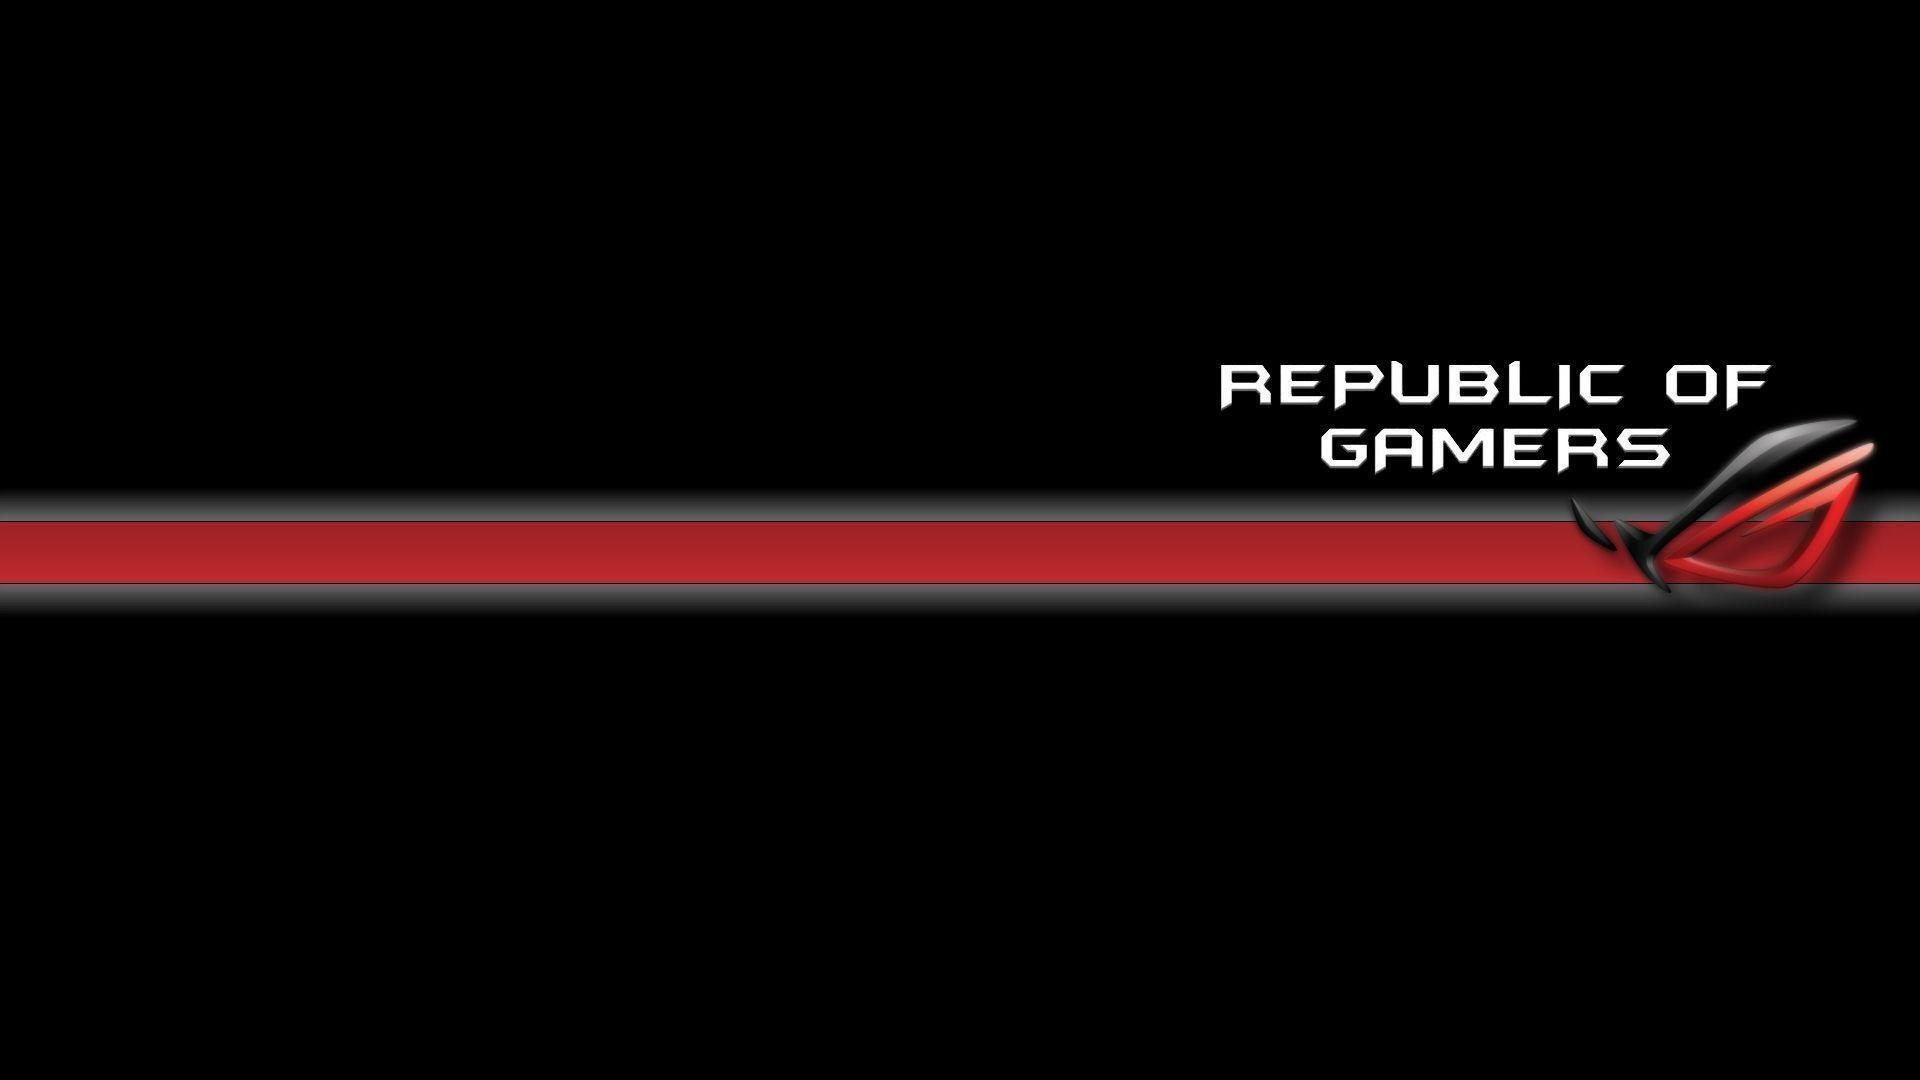 1920x1080 Minimalist Black And Red Asus RoG Wallpaper #1057 | TanukinoSippo.